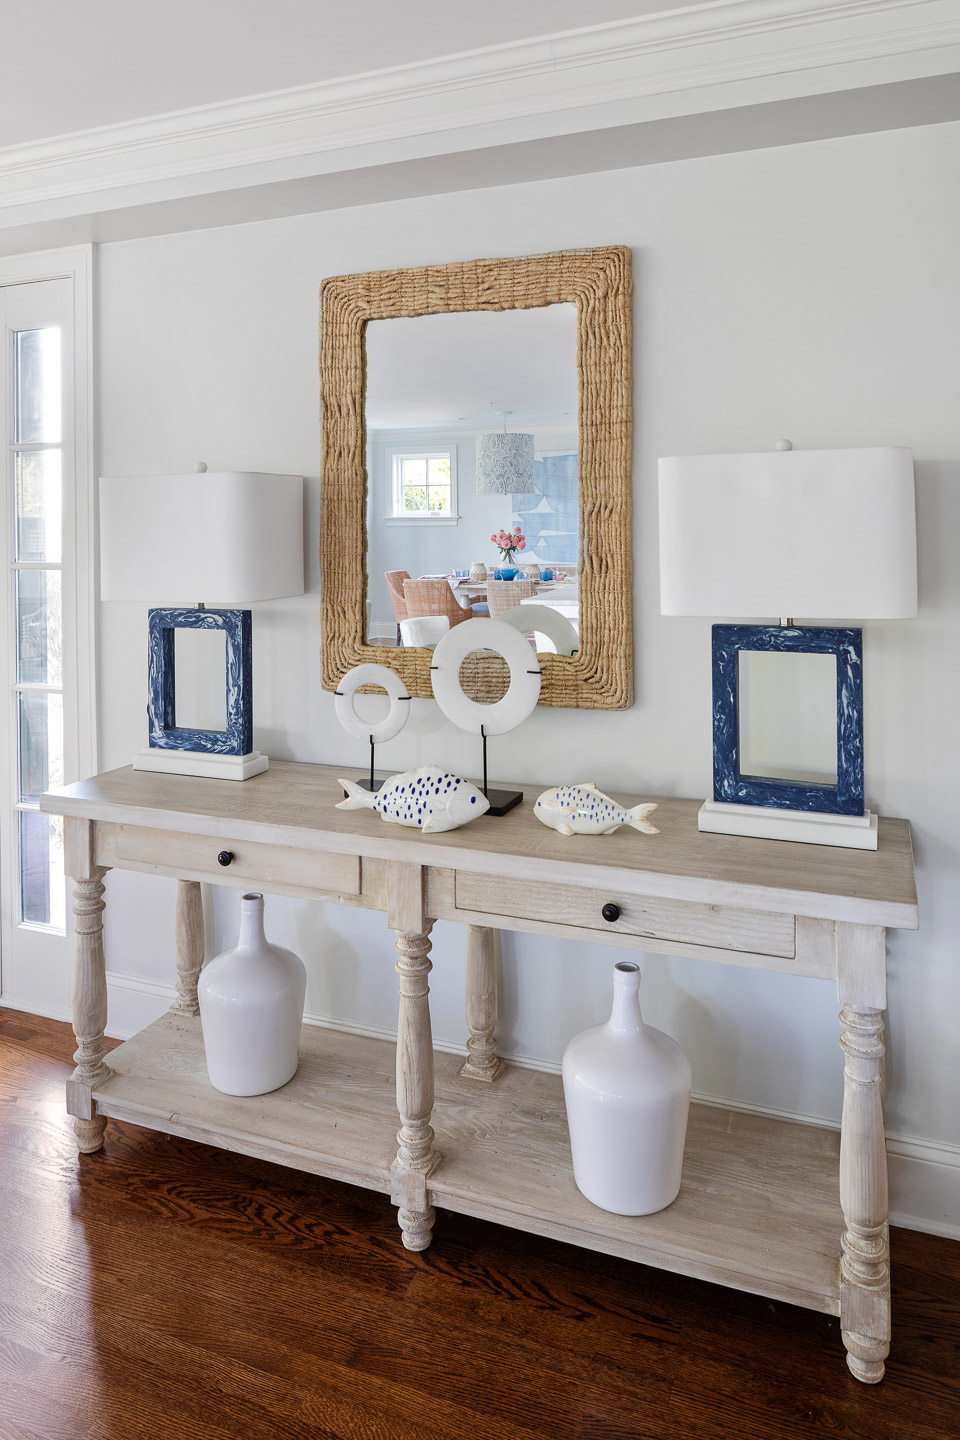 Rhode Island, interior design, interior designer, console table, console table decorating ideas